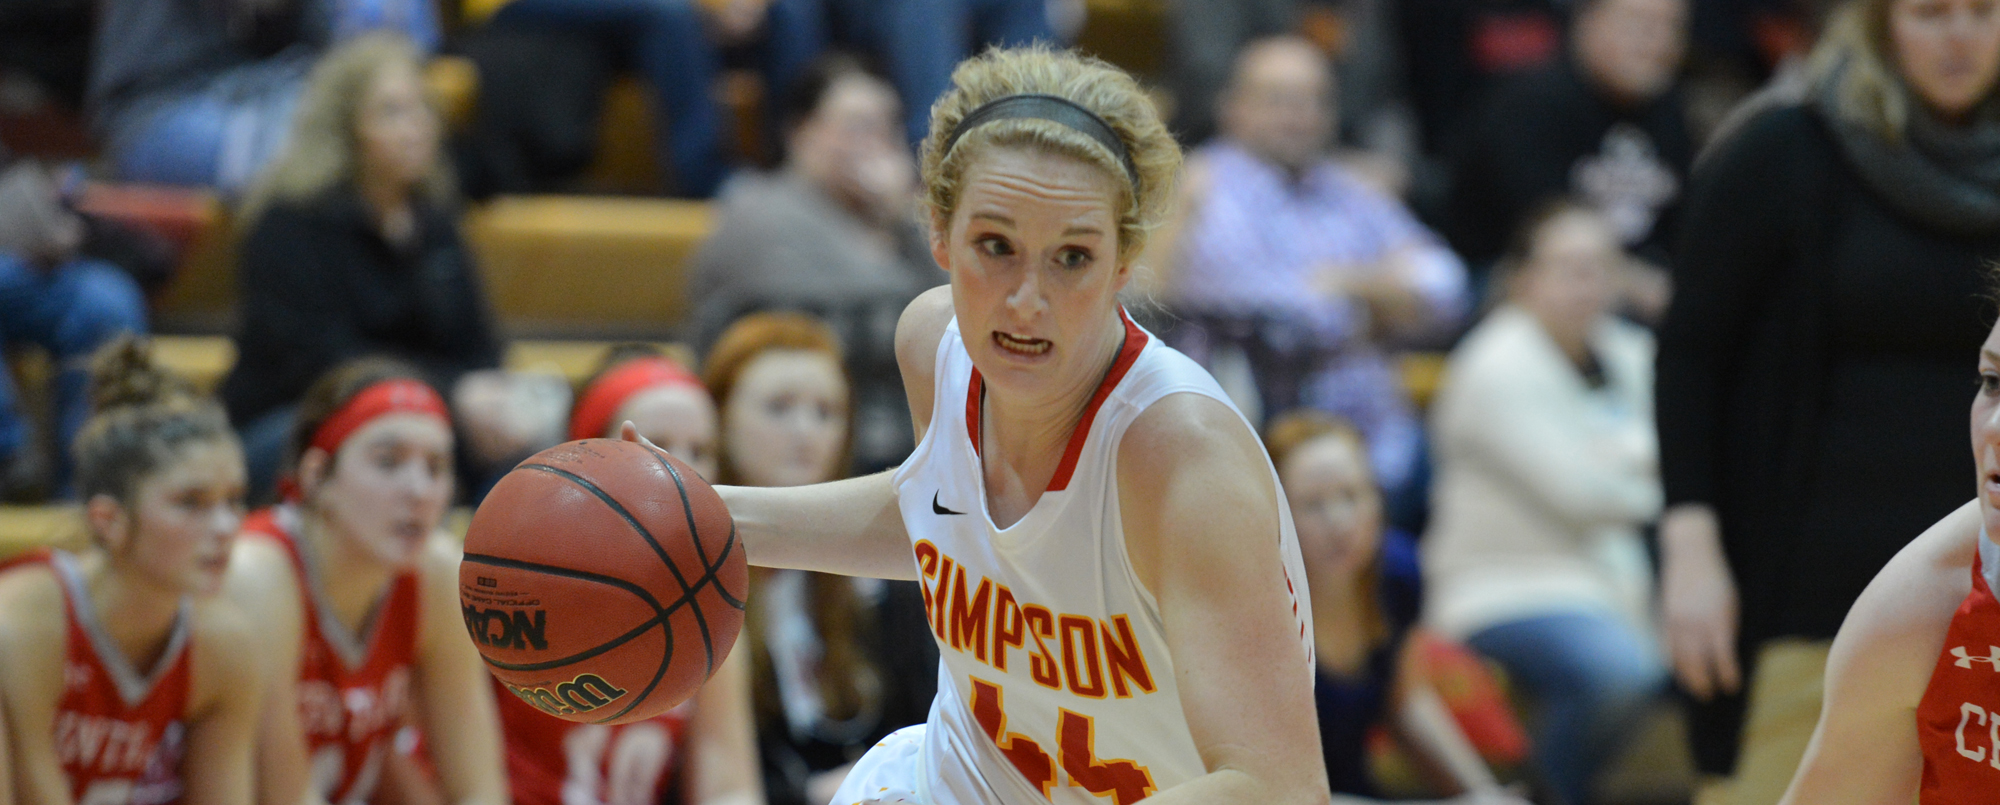 Maddie Simmons scored a career-high 14 points in Simpson's 64-61 win over Coe.